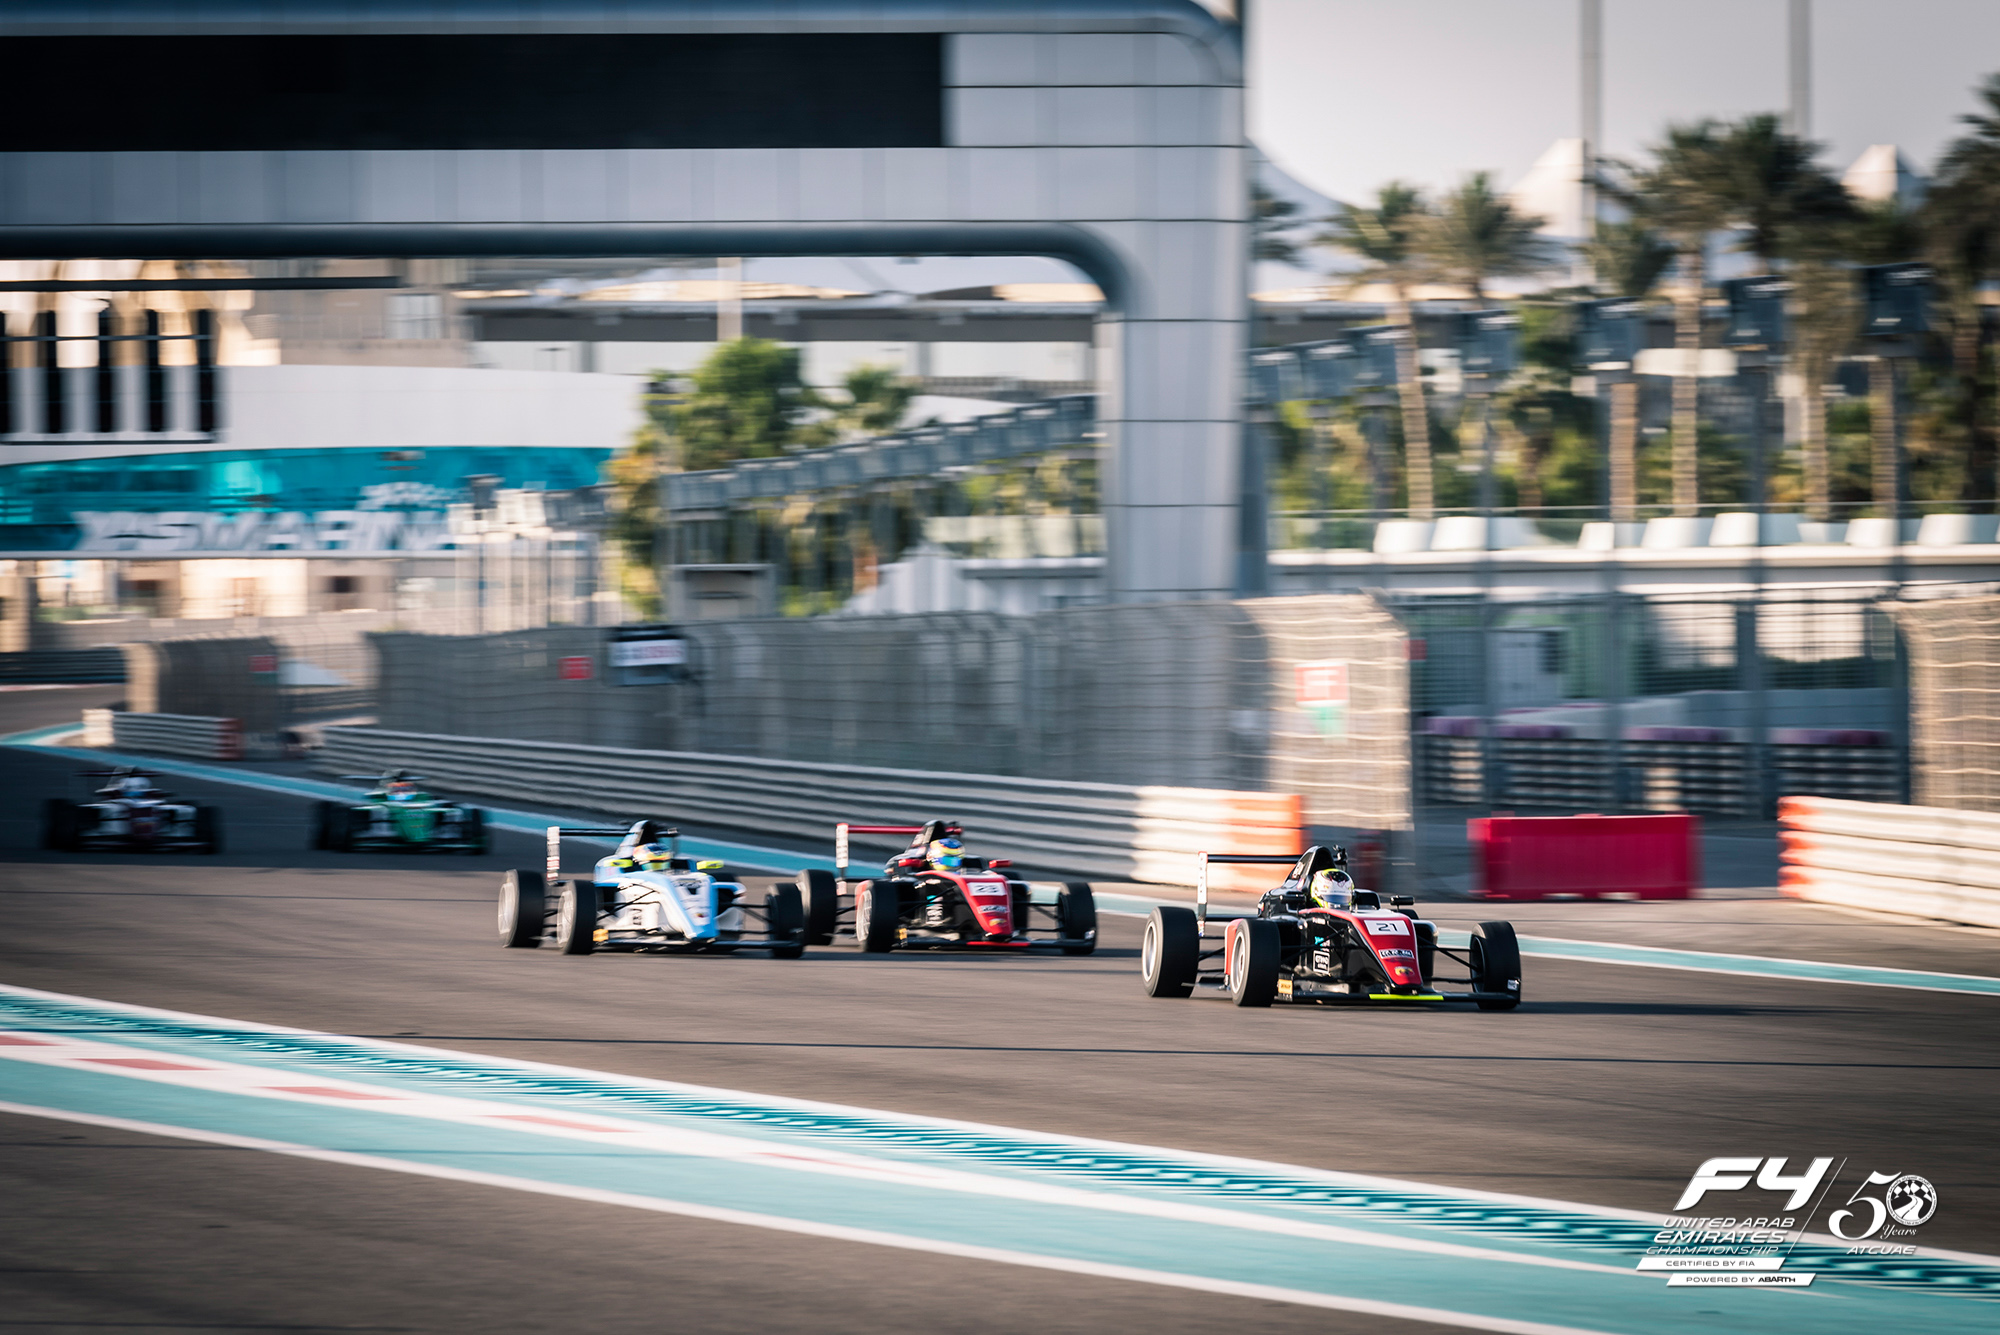 2016 12 18   F4 Second Roud   Abu Dhabi 4 Of 39